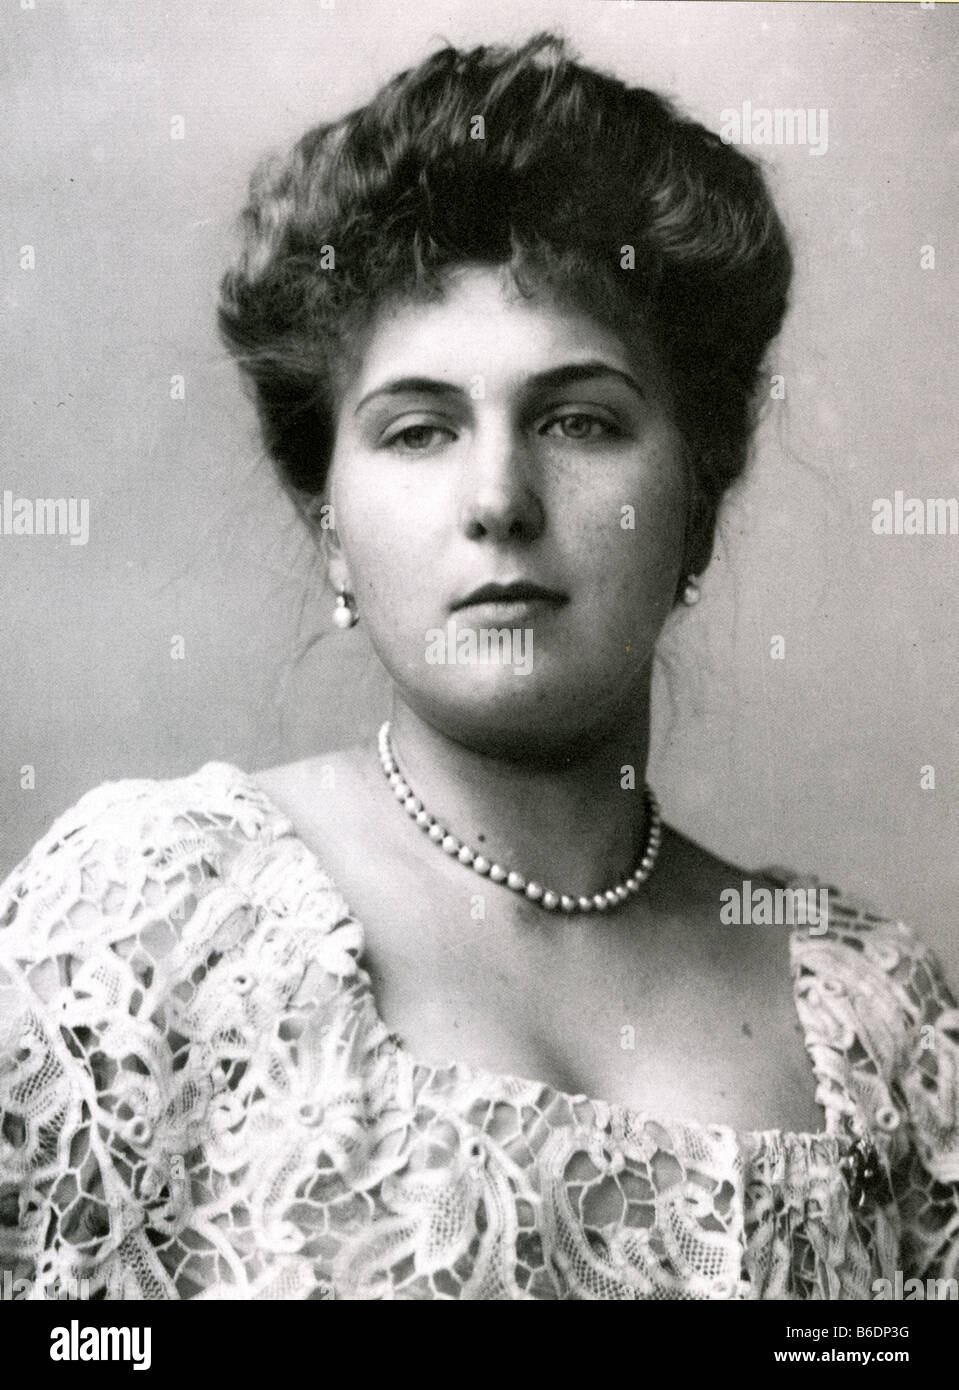 VICTORIA EUGENIE OF BATTENBERG 1887 - 1969. Queen consort of King Alfonso XIII of Spain and grand-daughter of Queen - Stock Image